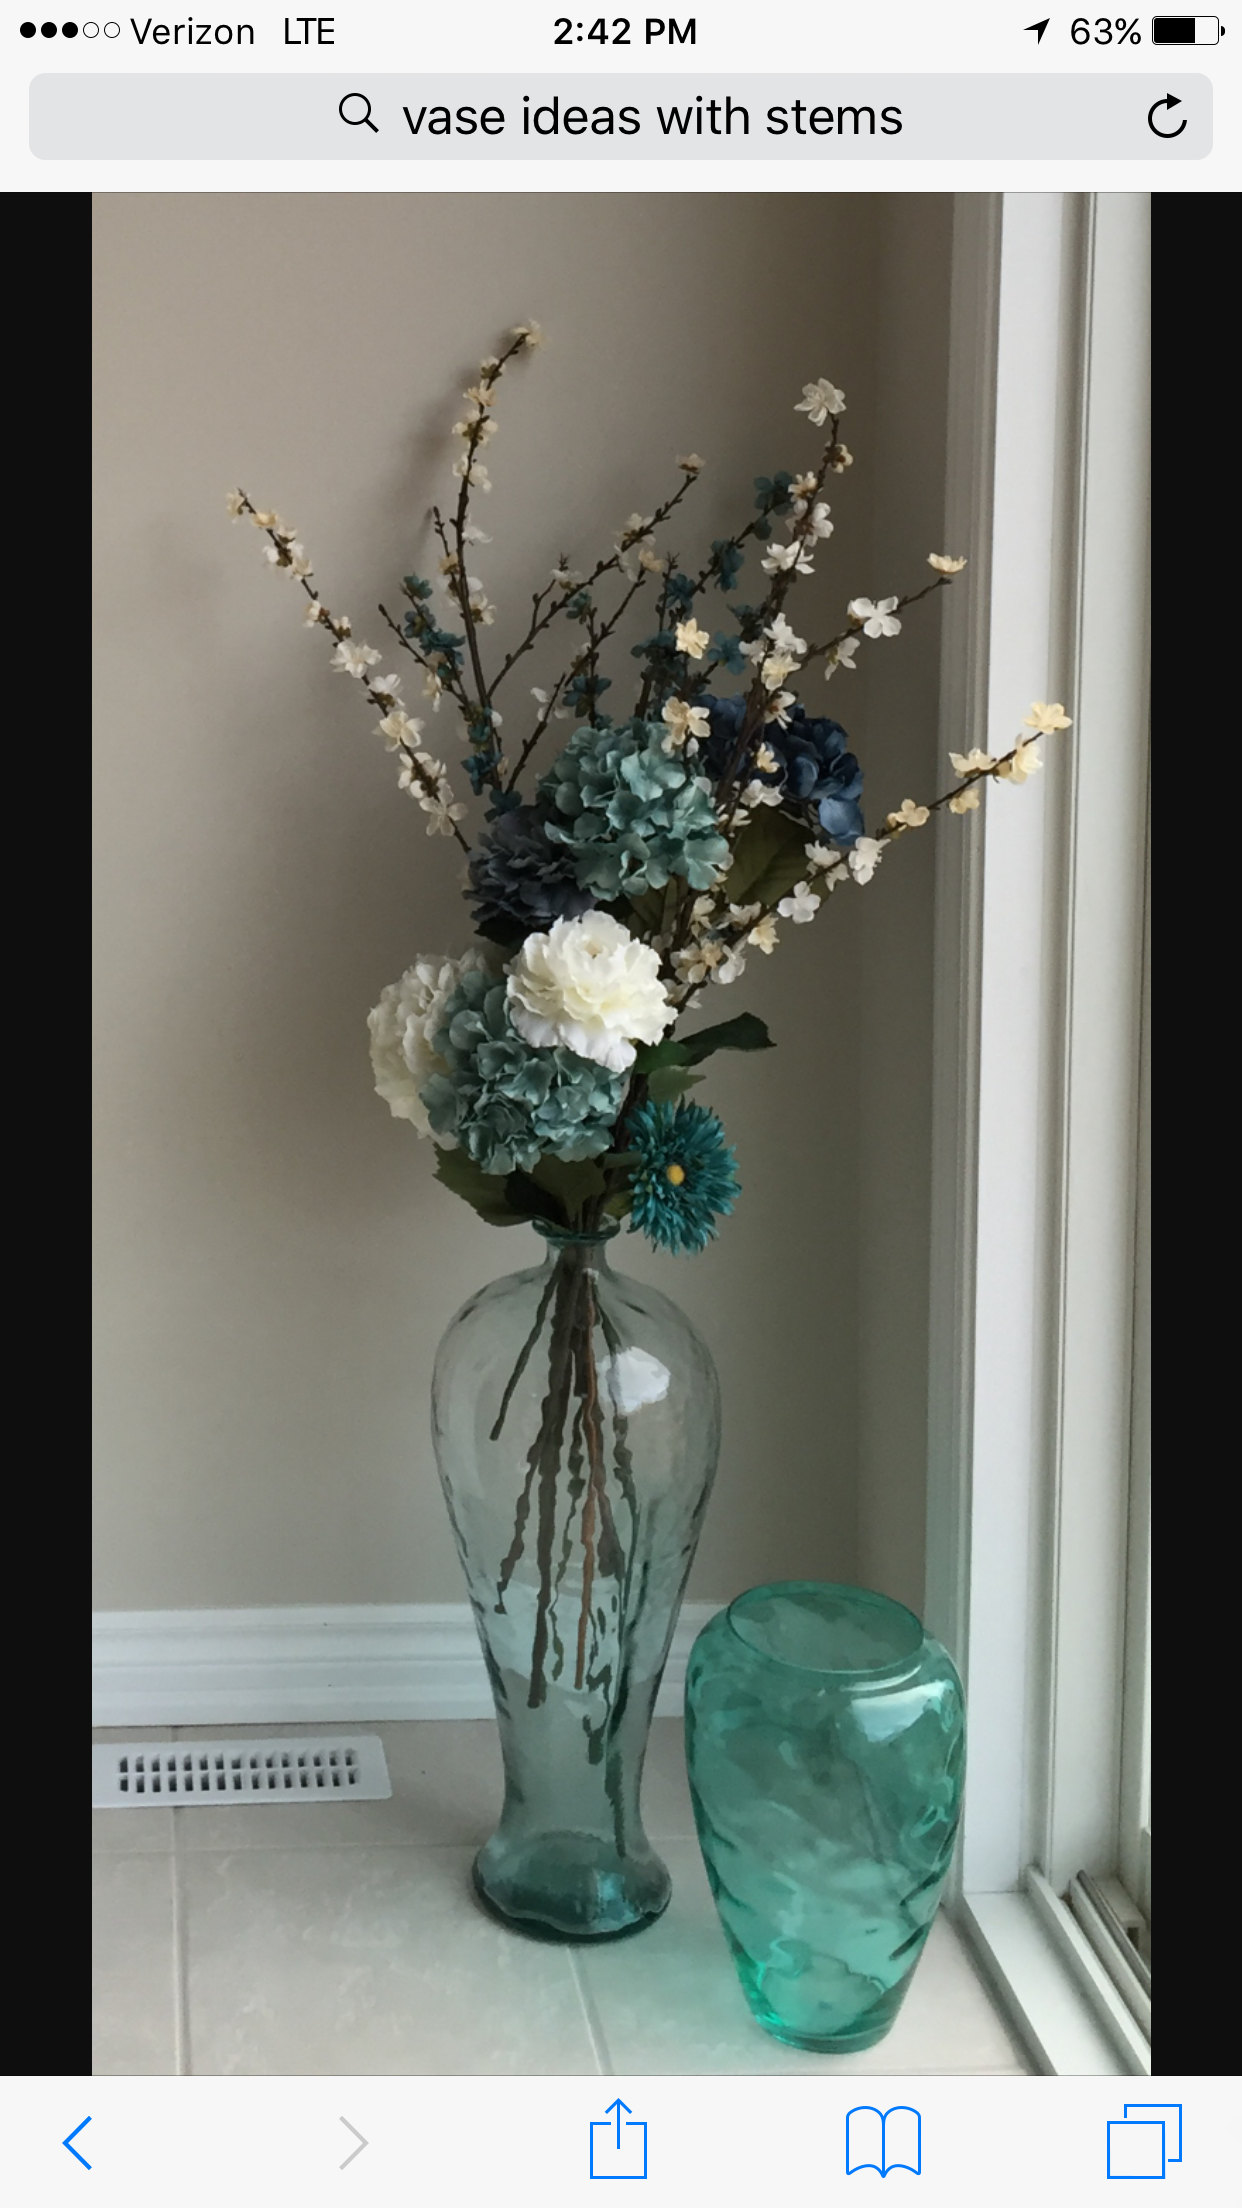 Pin By April Carr On Home Decor Floor Vase Decor Glass Vase Decor Glass Floor Vase